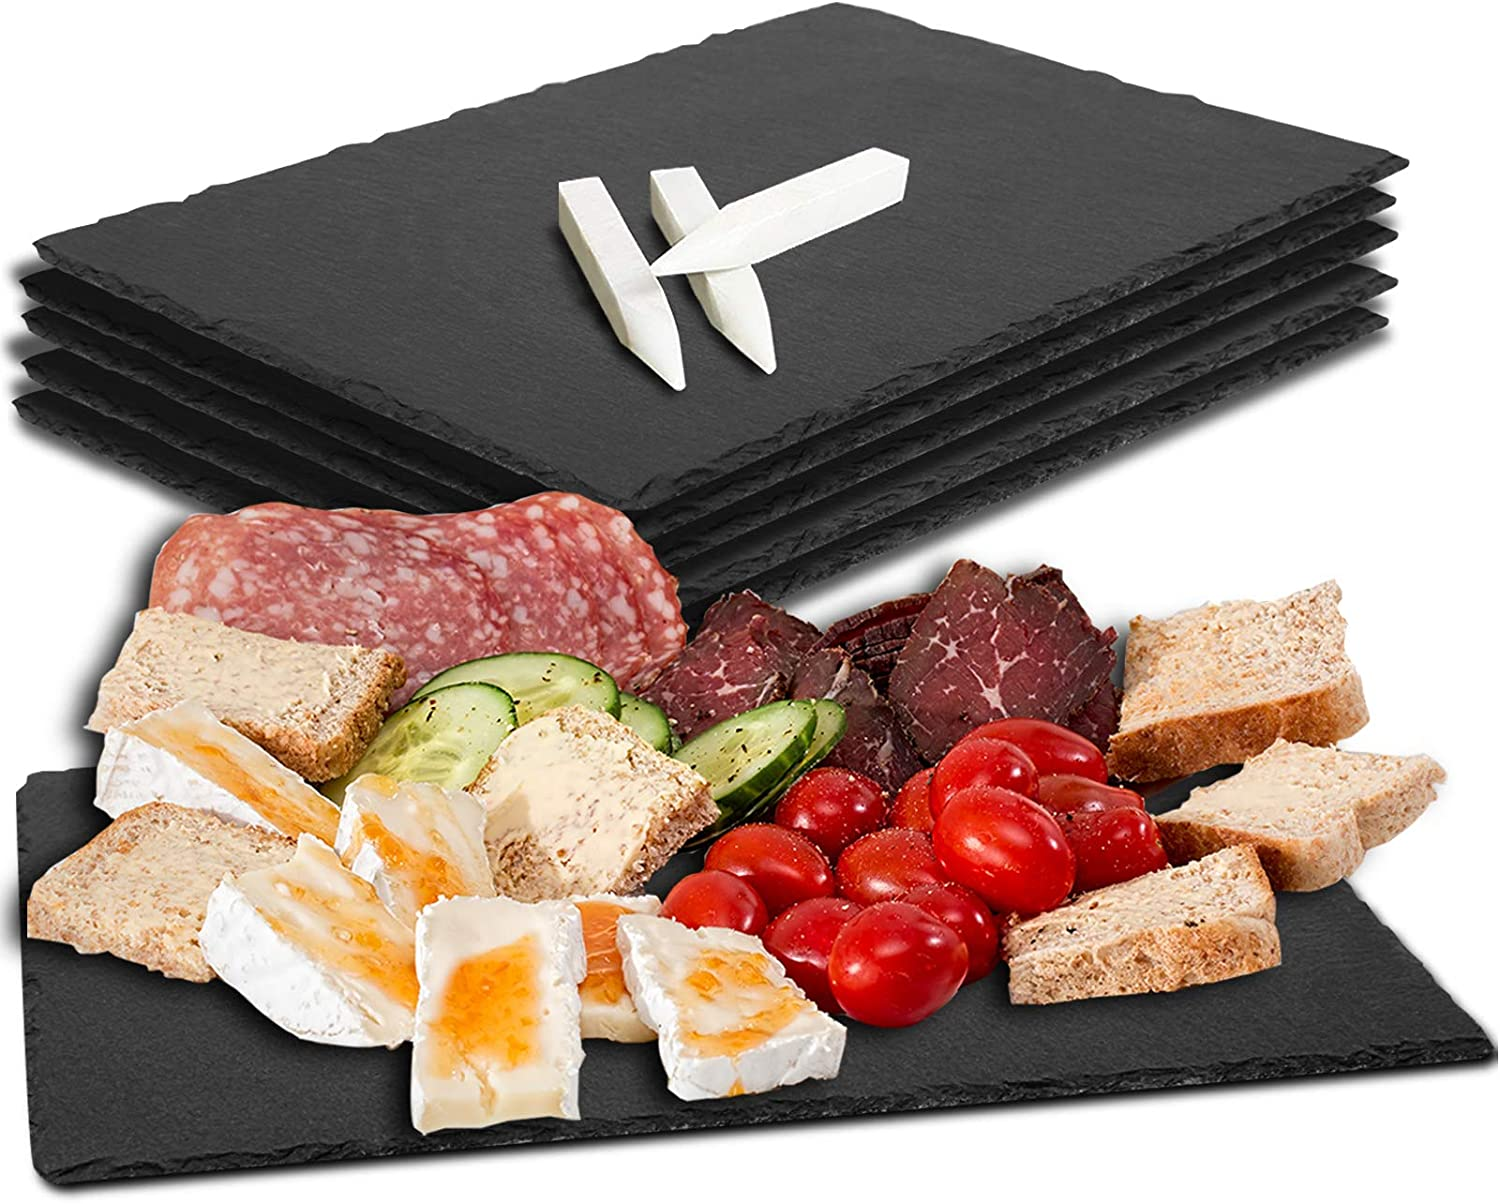 """Slate Cheese Boards, CARL COOPER 6 Pack 8.75"""" x 6"""" x 0.15"""" Stone Gourmet Serving Platter Tray Display Chalkboard with 3 Pieces Soapstone Chalks for Cheese, Meats, Appetizers, Dried Fruits, Black"""